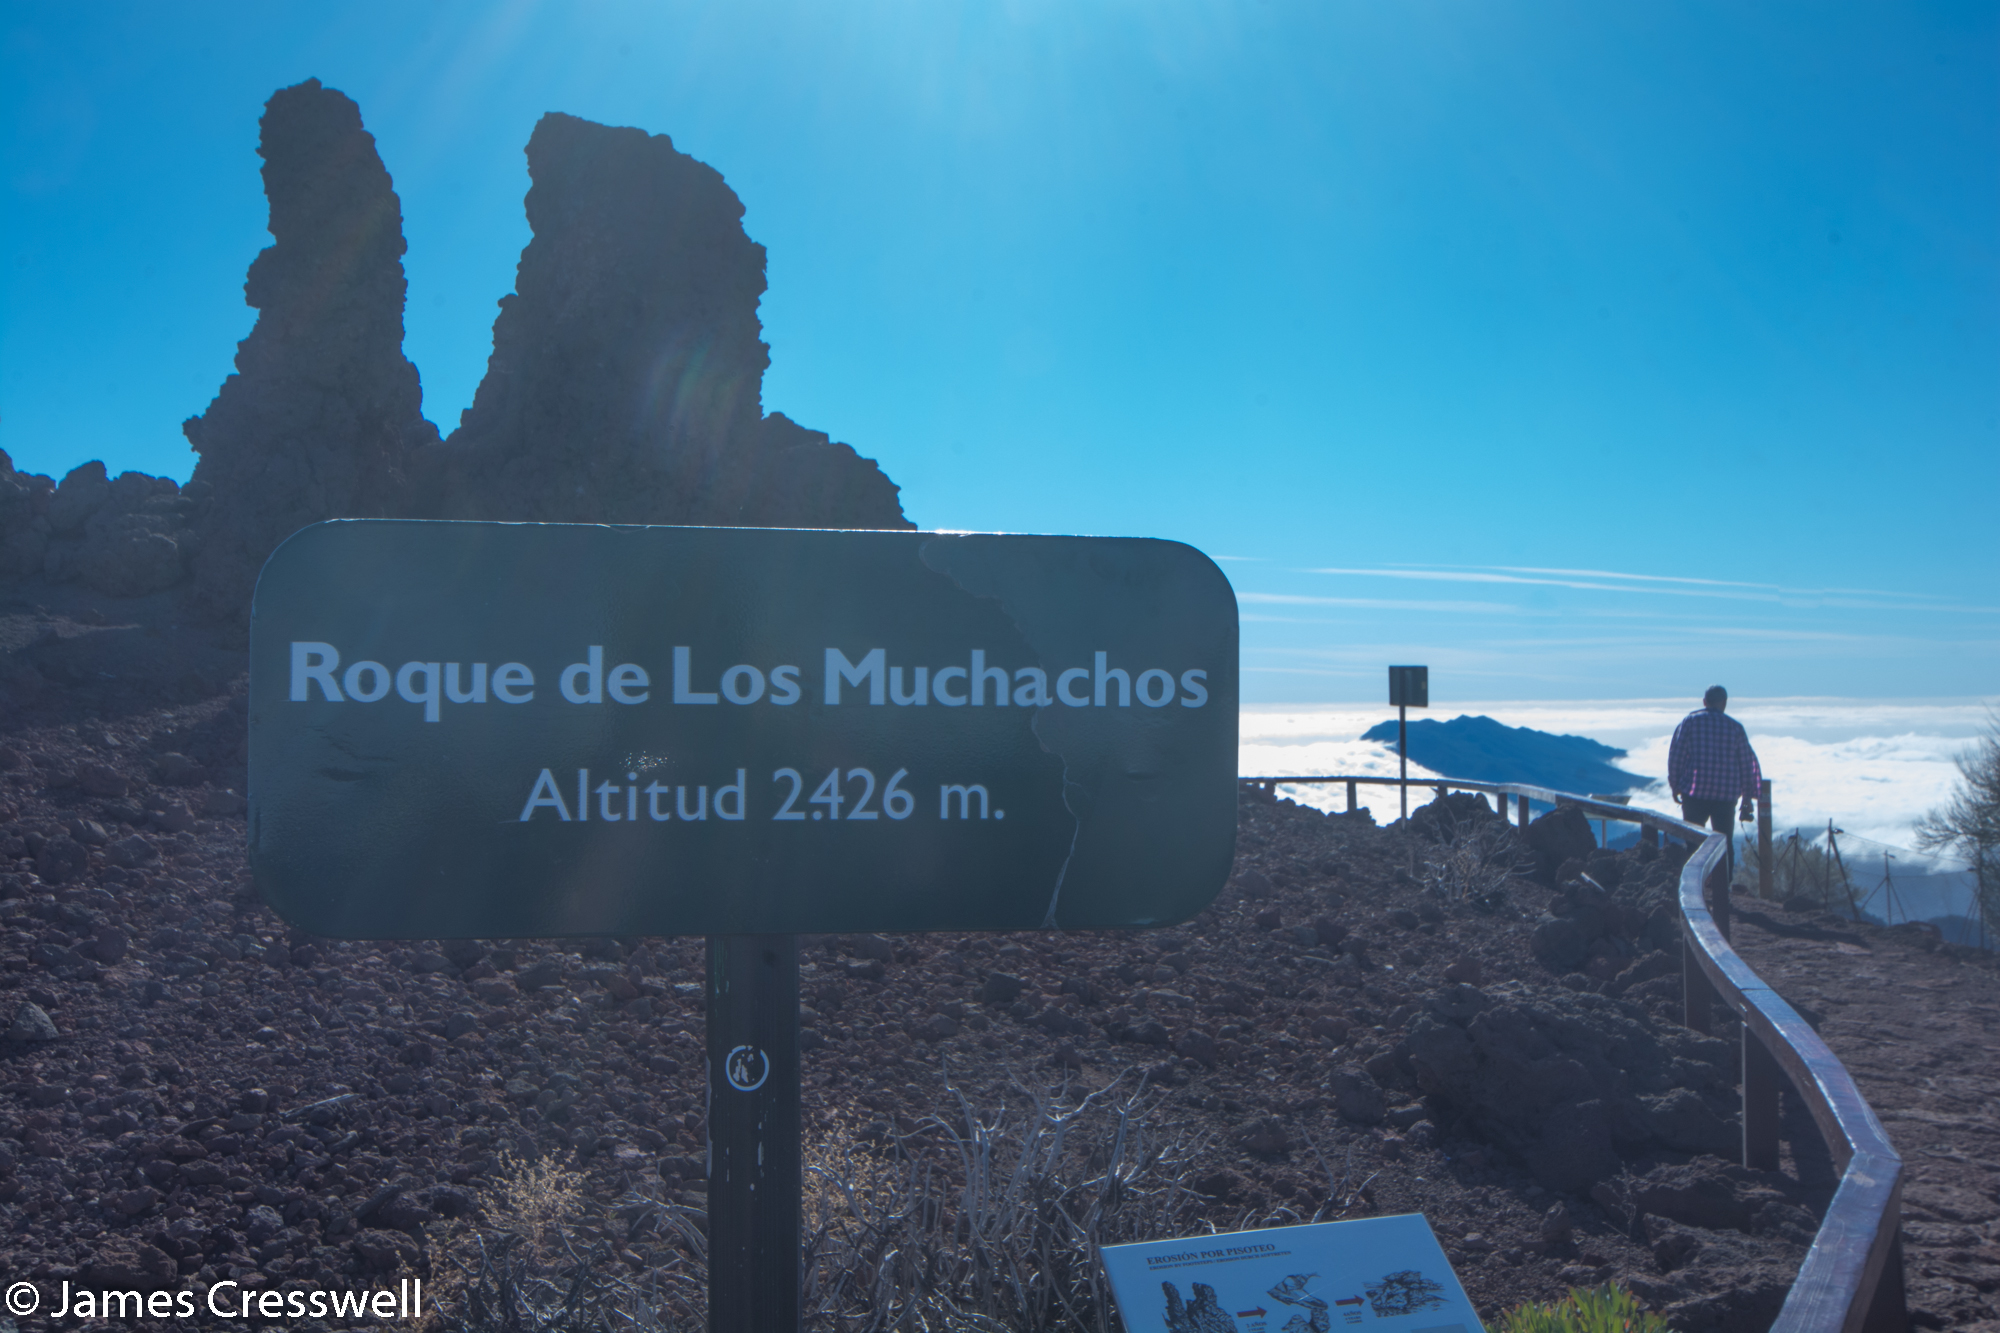 Sign post with name and altitude